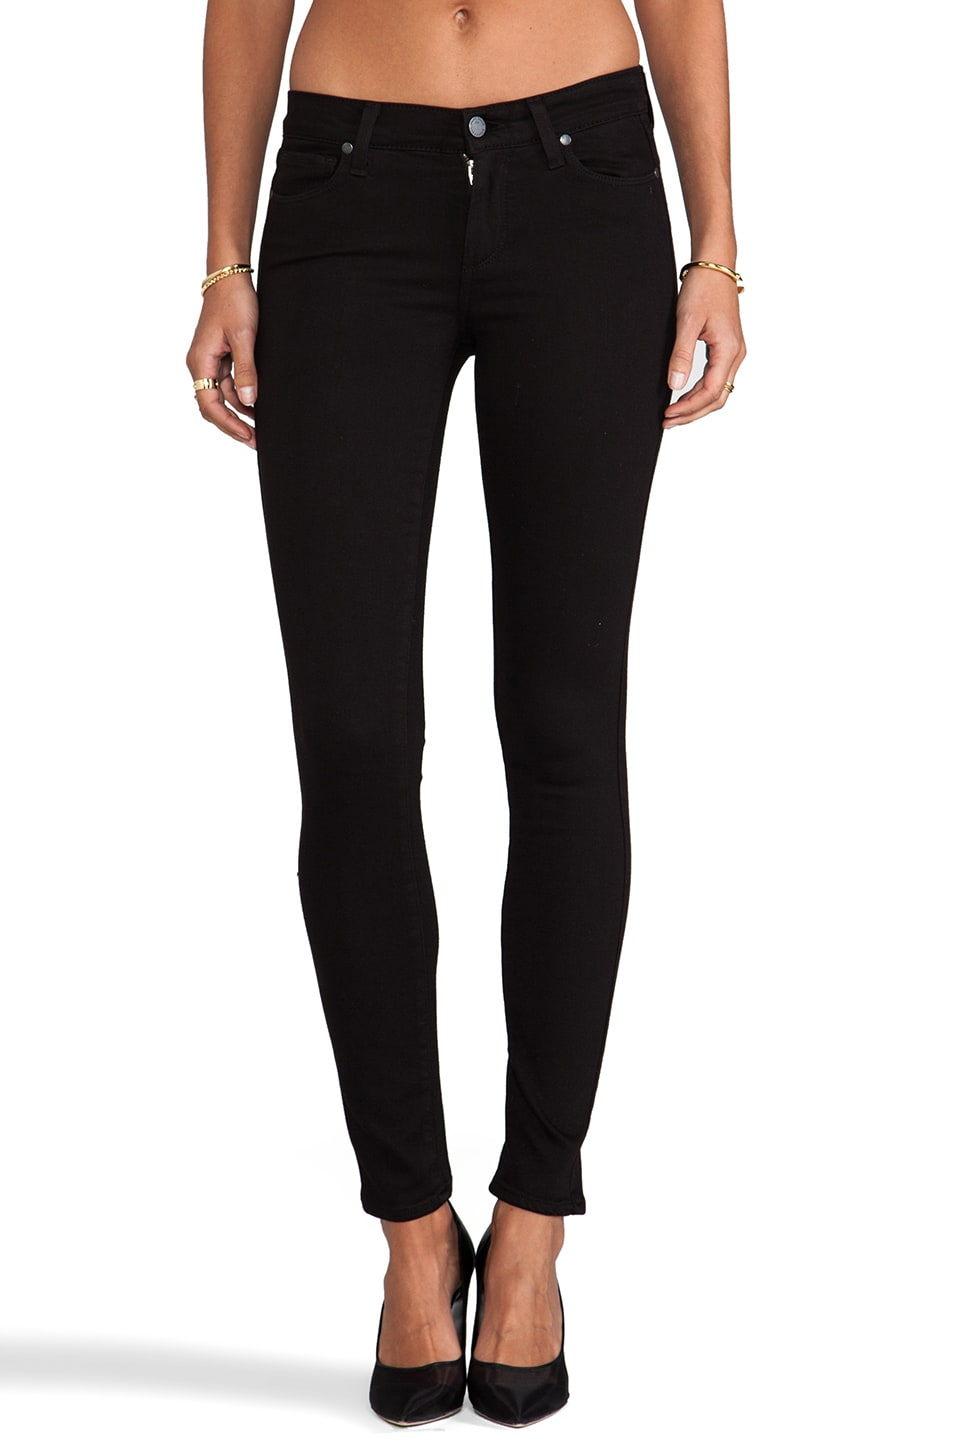 PAIGE Denim Verdugo Ultra Skinny in Black Dahlia